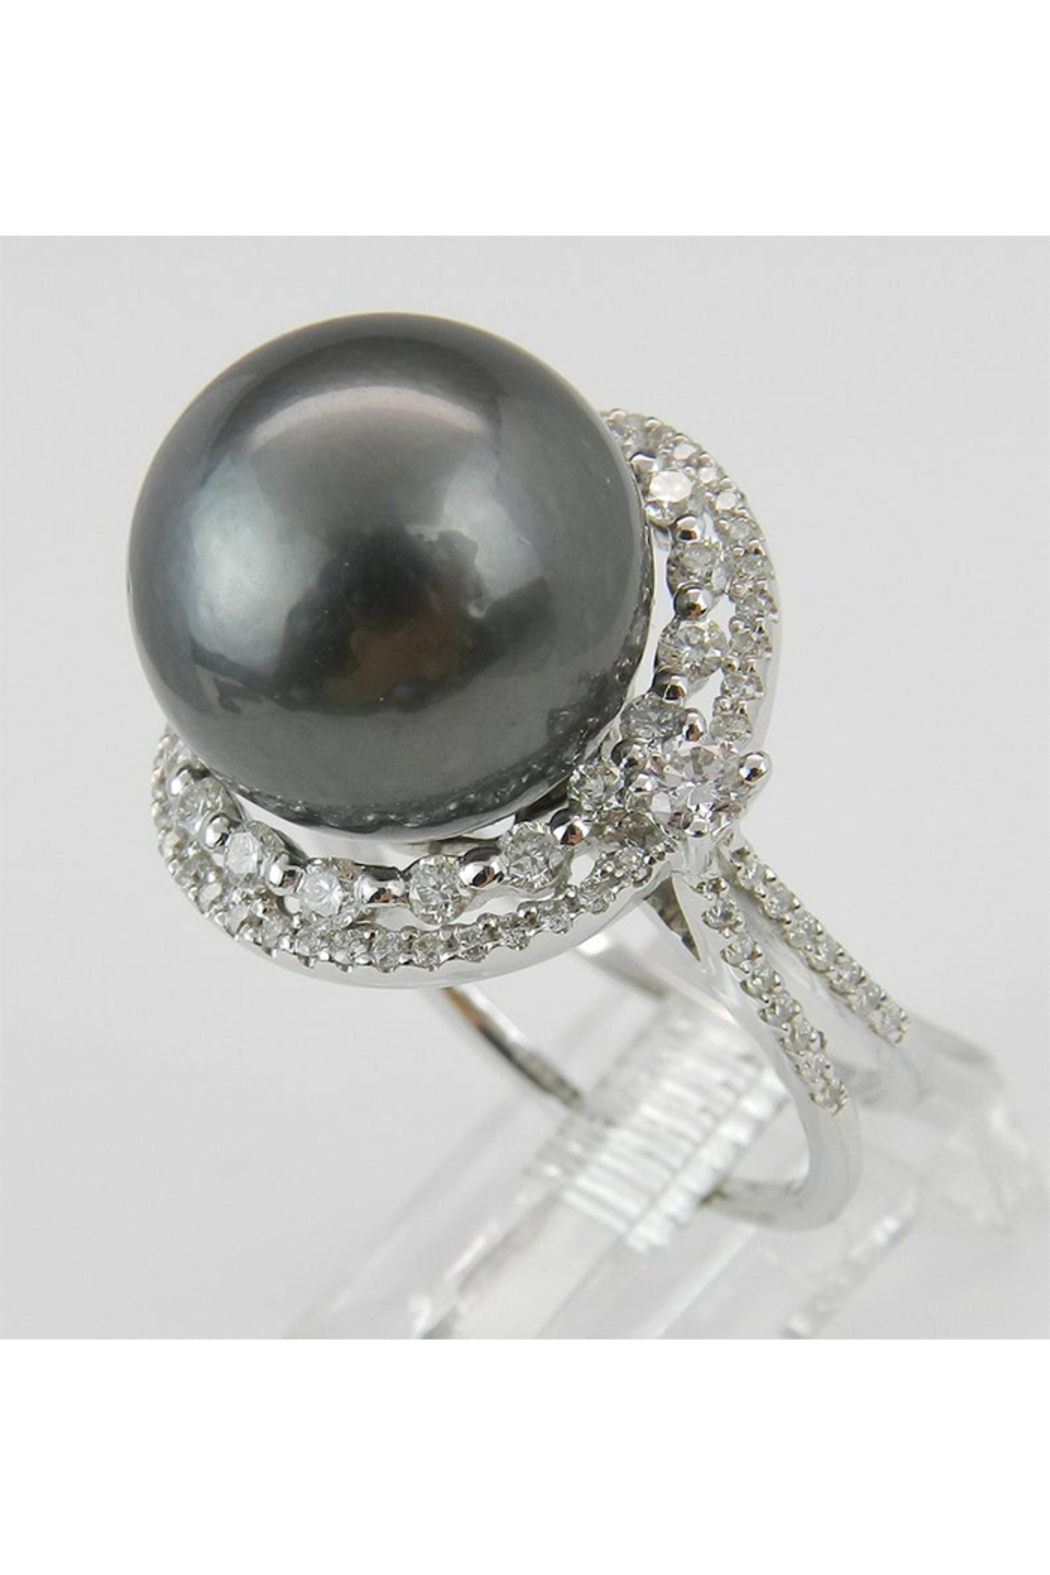 Margolin & Co Black Pearl Ring, Diamond and Pearl Engagement Ring, Tahitian Pearl Ring, 18K White Gold Diamond and Pearl Ring, Diamond Halo Ring - Side Cropped Image